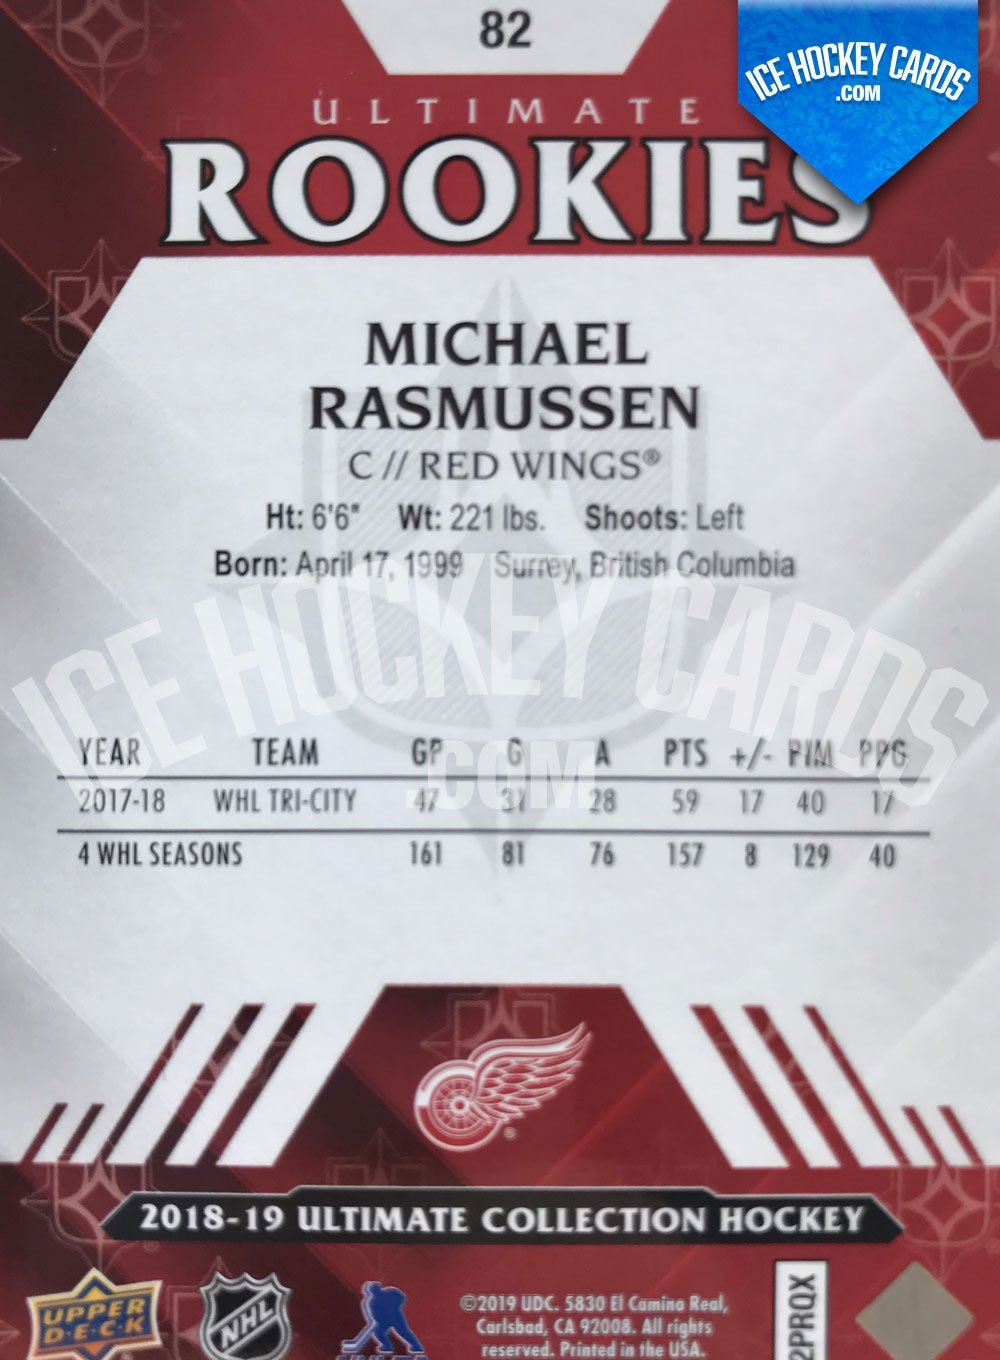 Upper Deck - Ultimate Collection 18-19 - Michael Rasmussen Ultimate Rookies Card back